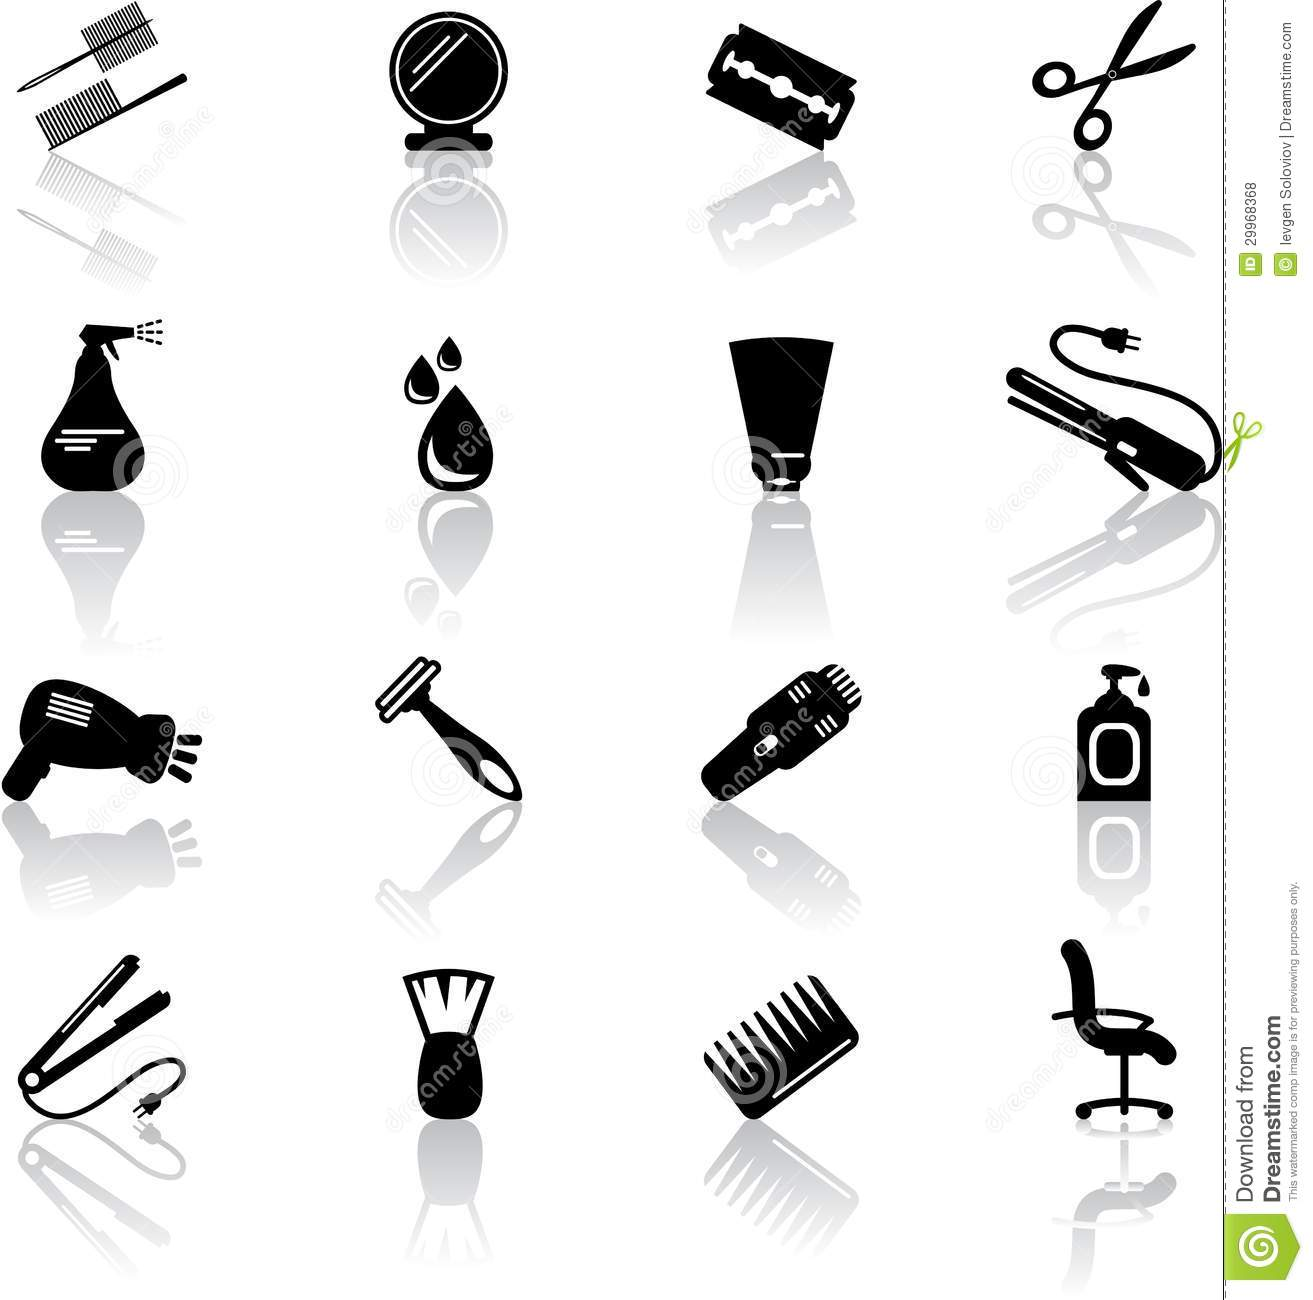 hair salon icons royalty free stock photos image 29968368 tooth clipart google tooth clip art coloring page